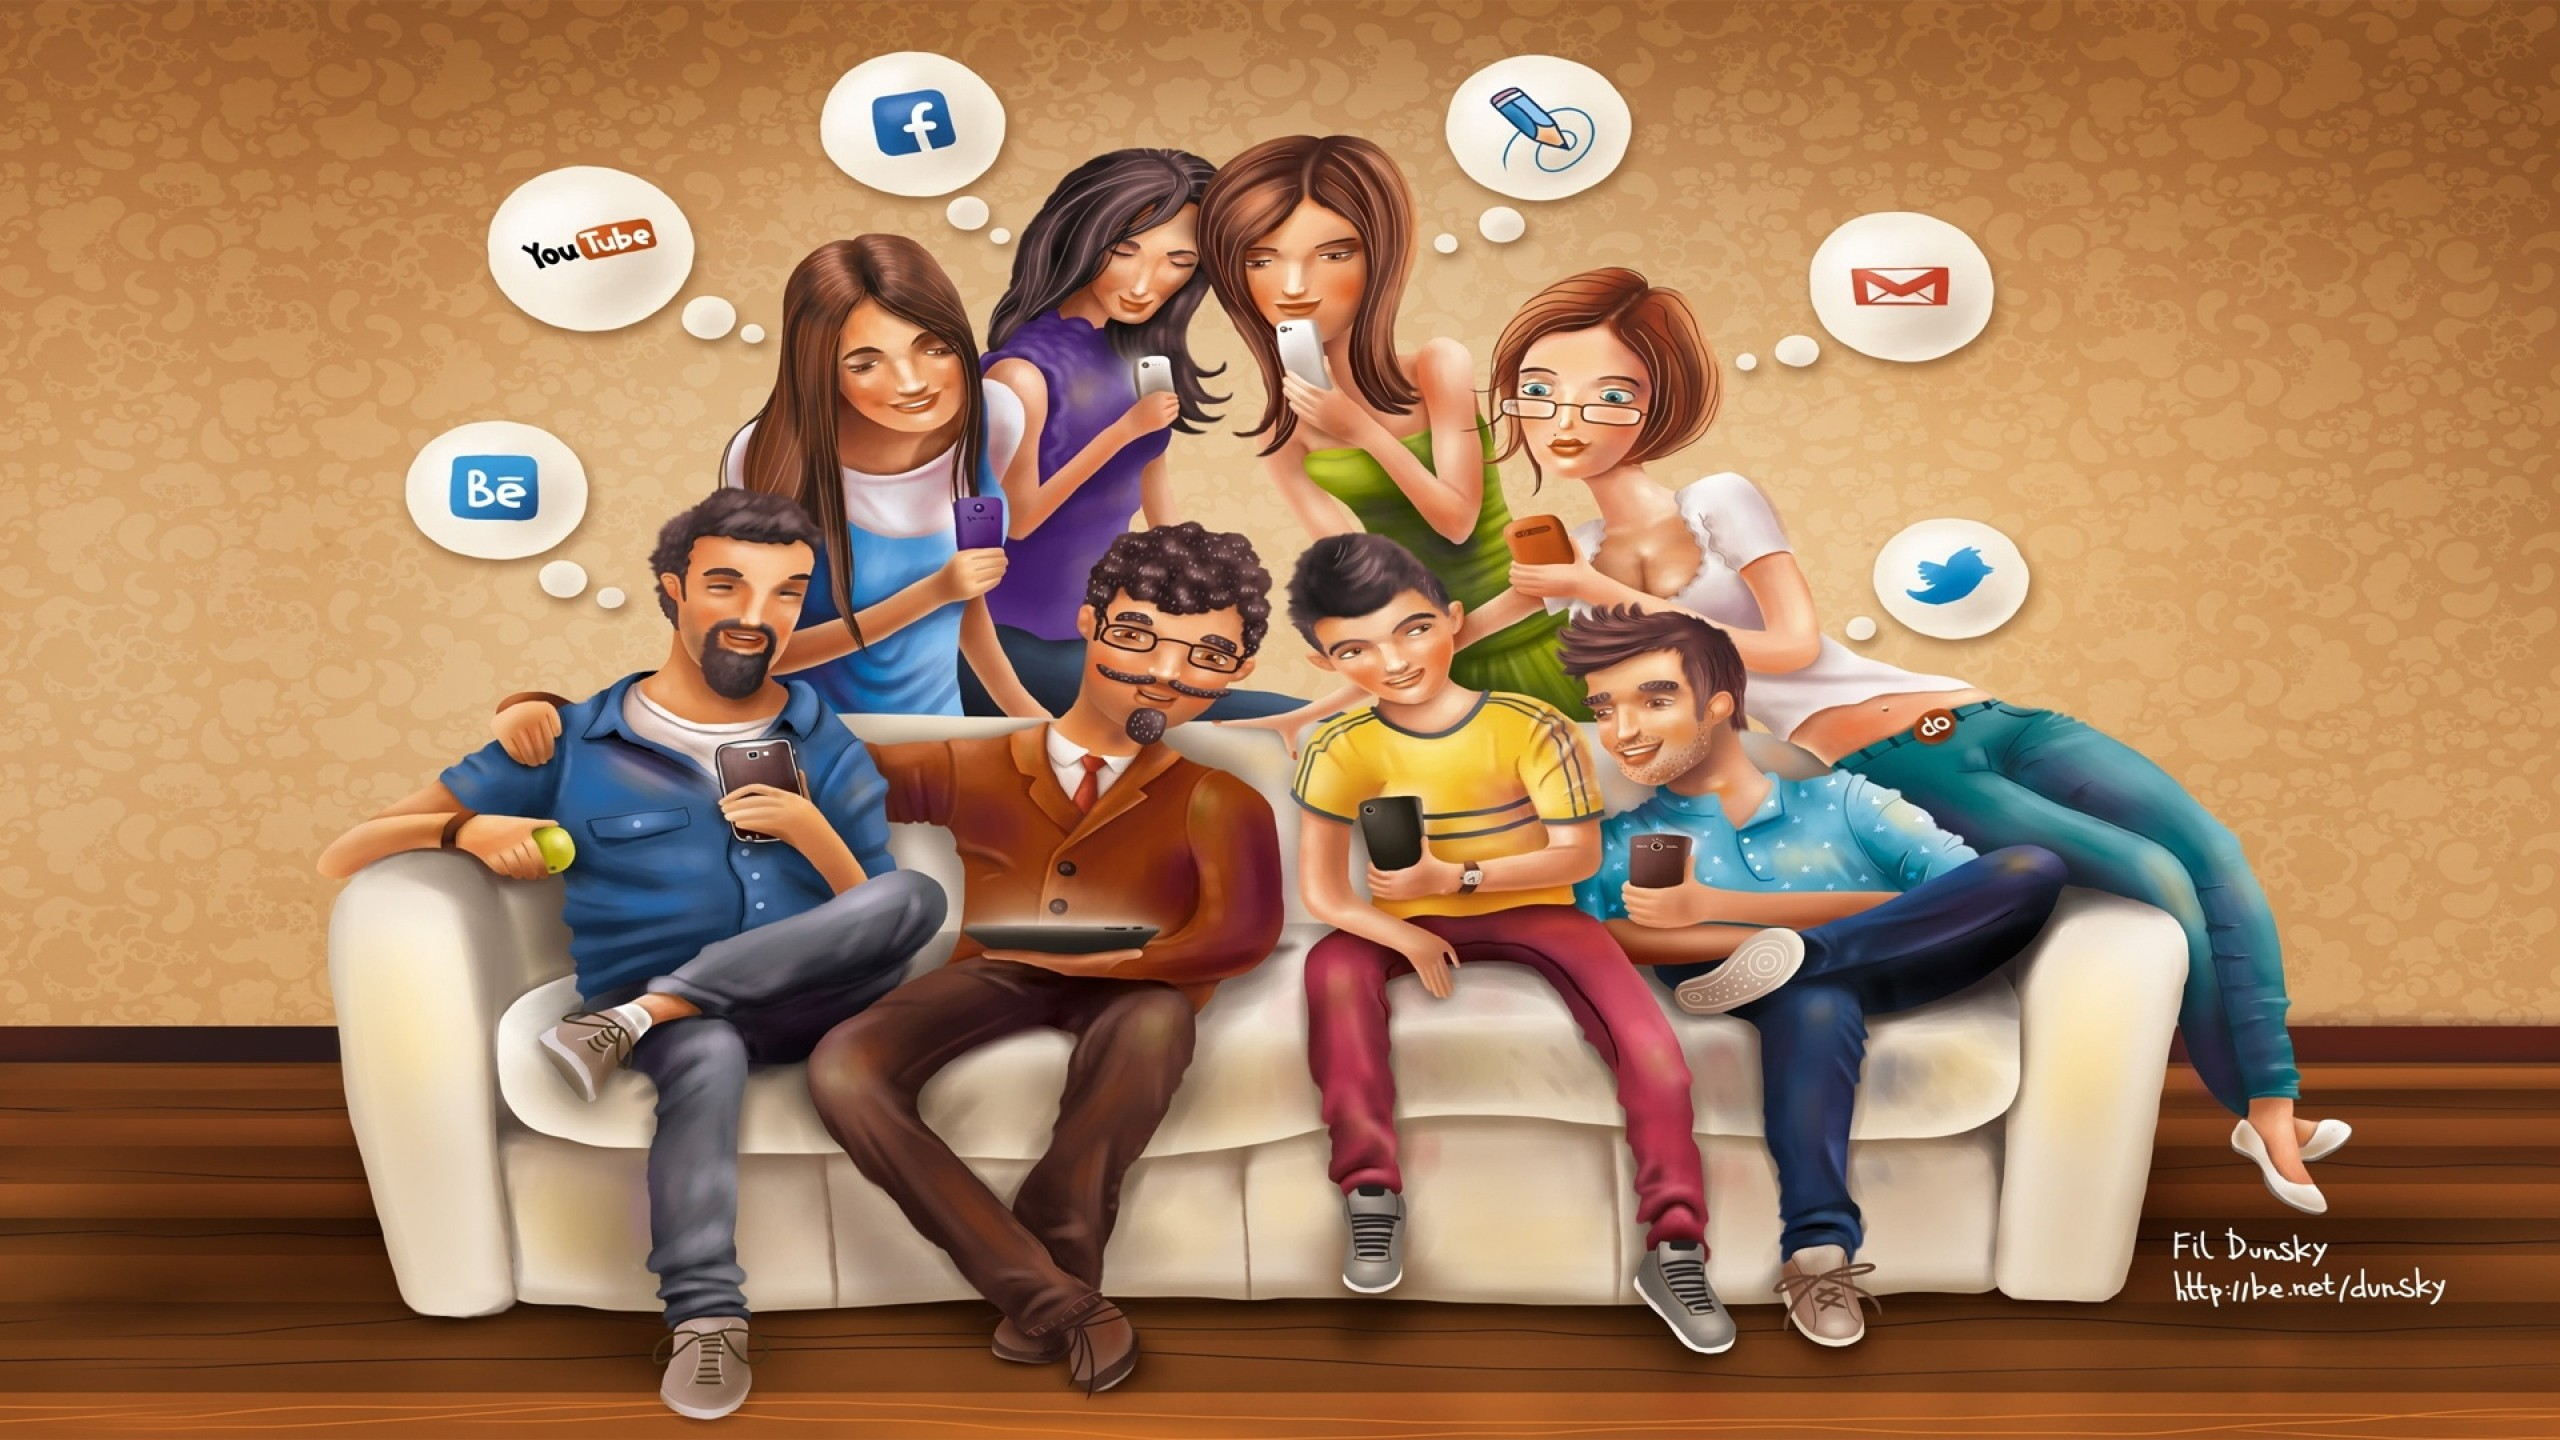 Preview wallpaper facebook, youtube, email, twitter, social networks  2560×1440